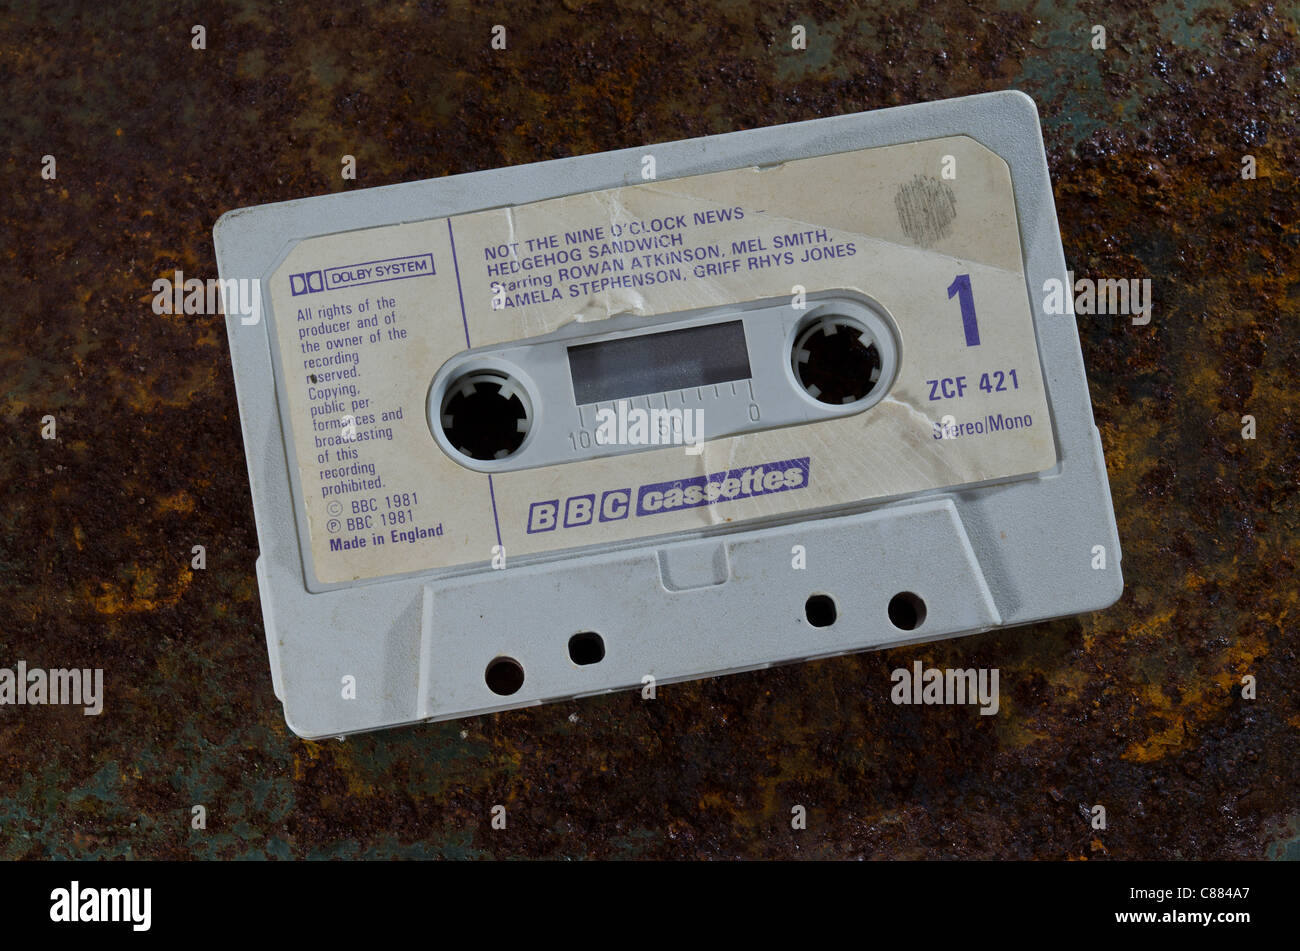 Audio Cassette Tape of Not The Nine O'Clock News Comedy show from the BBC recorded in the early 80's - Stock Image